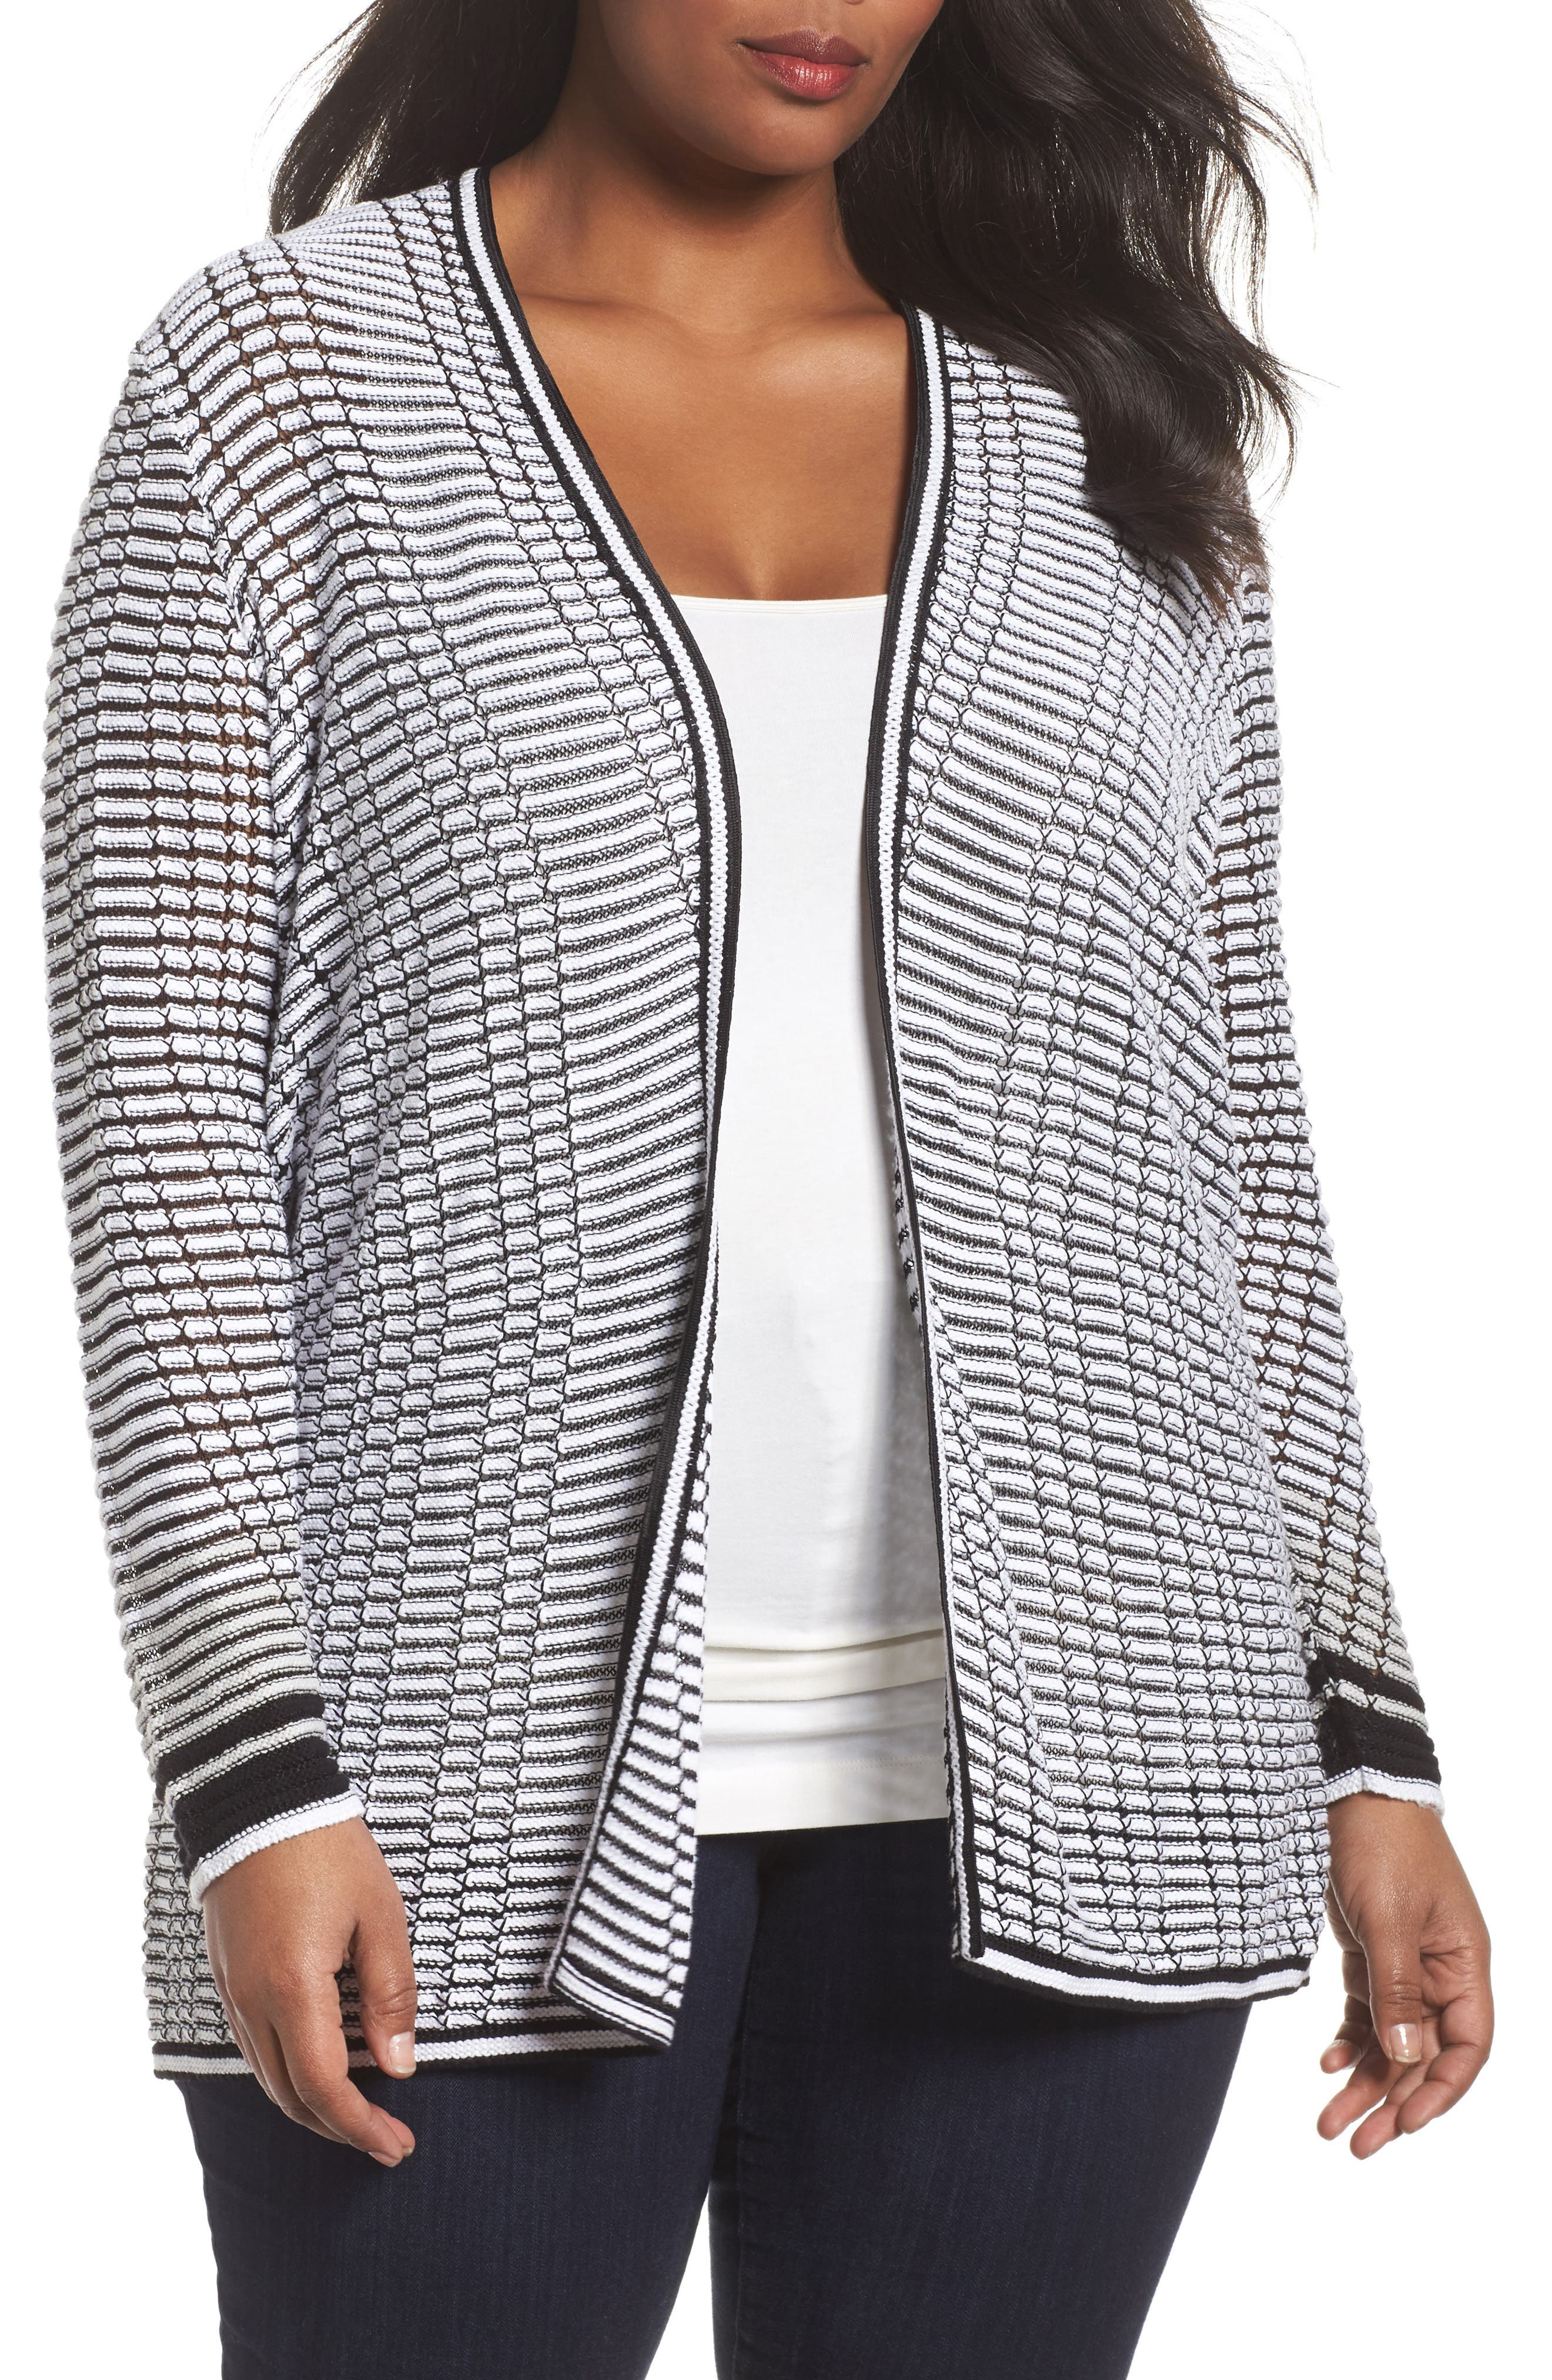 Alternate Image 1 Selected - NIC+ZOE Striped Space Cardigan (Plus Size)